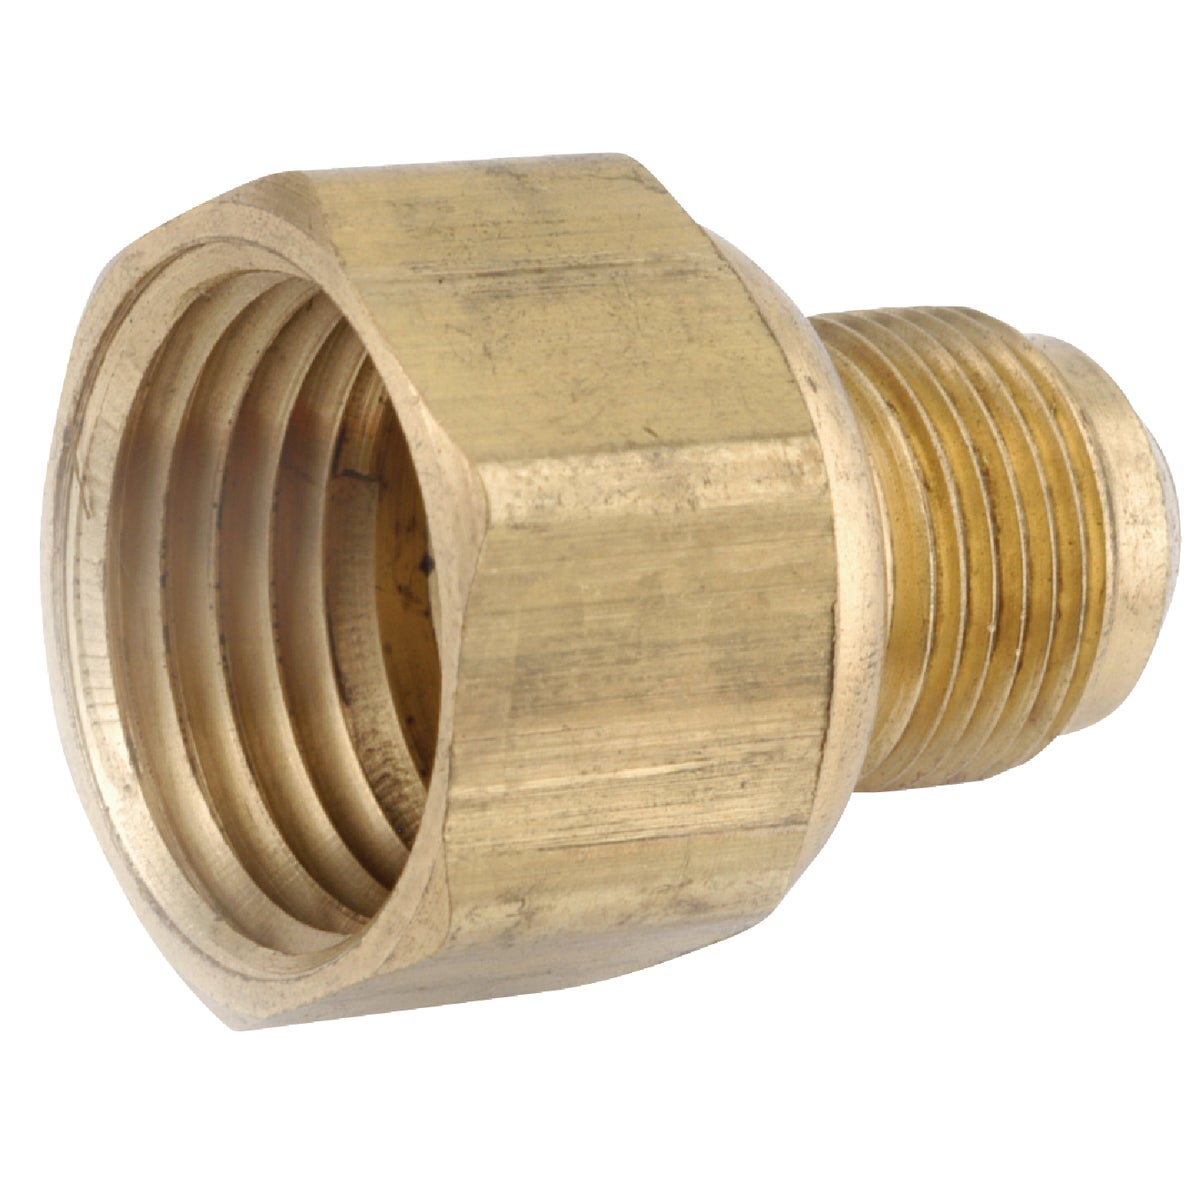 3/8ODX3/8 FEMALE ADAPTER - 54806-0606 by Anderson Metals Corp